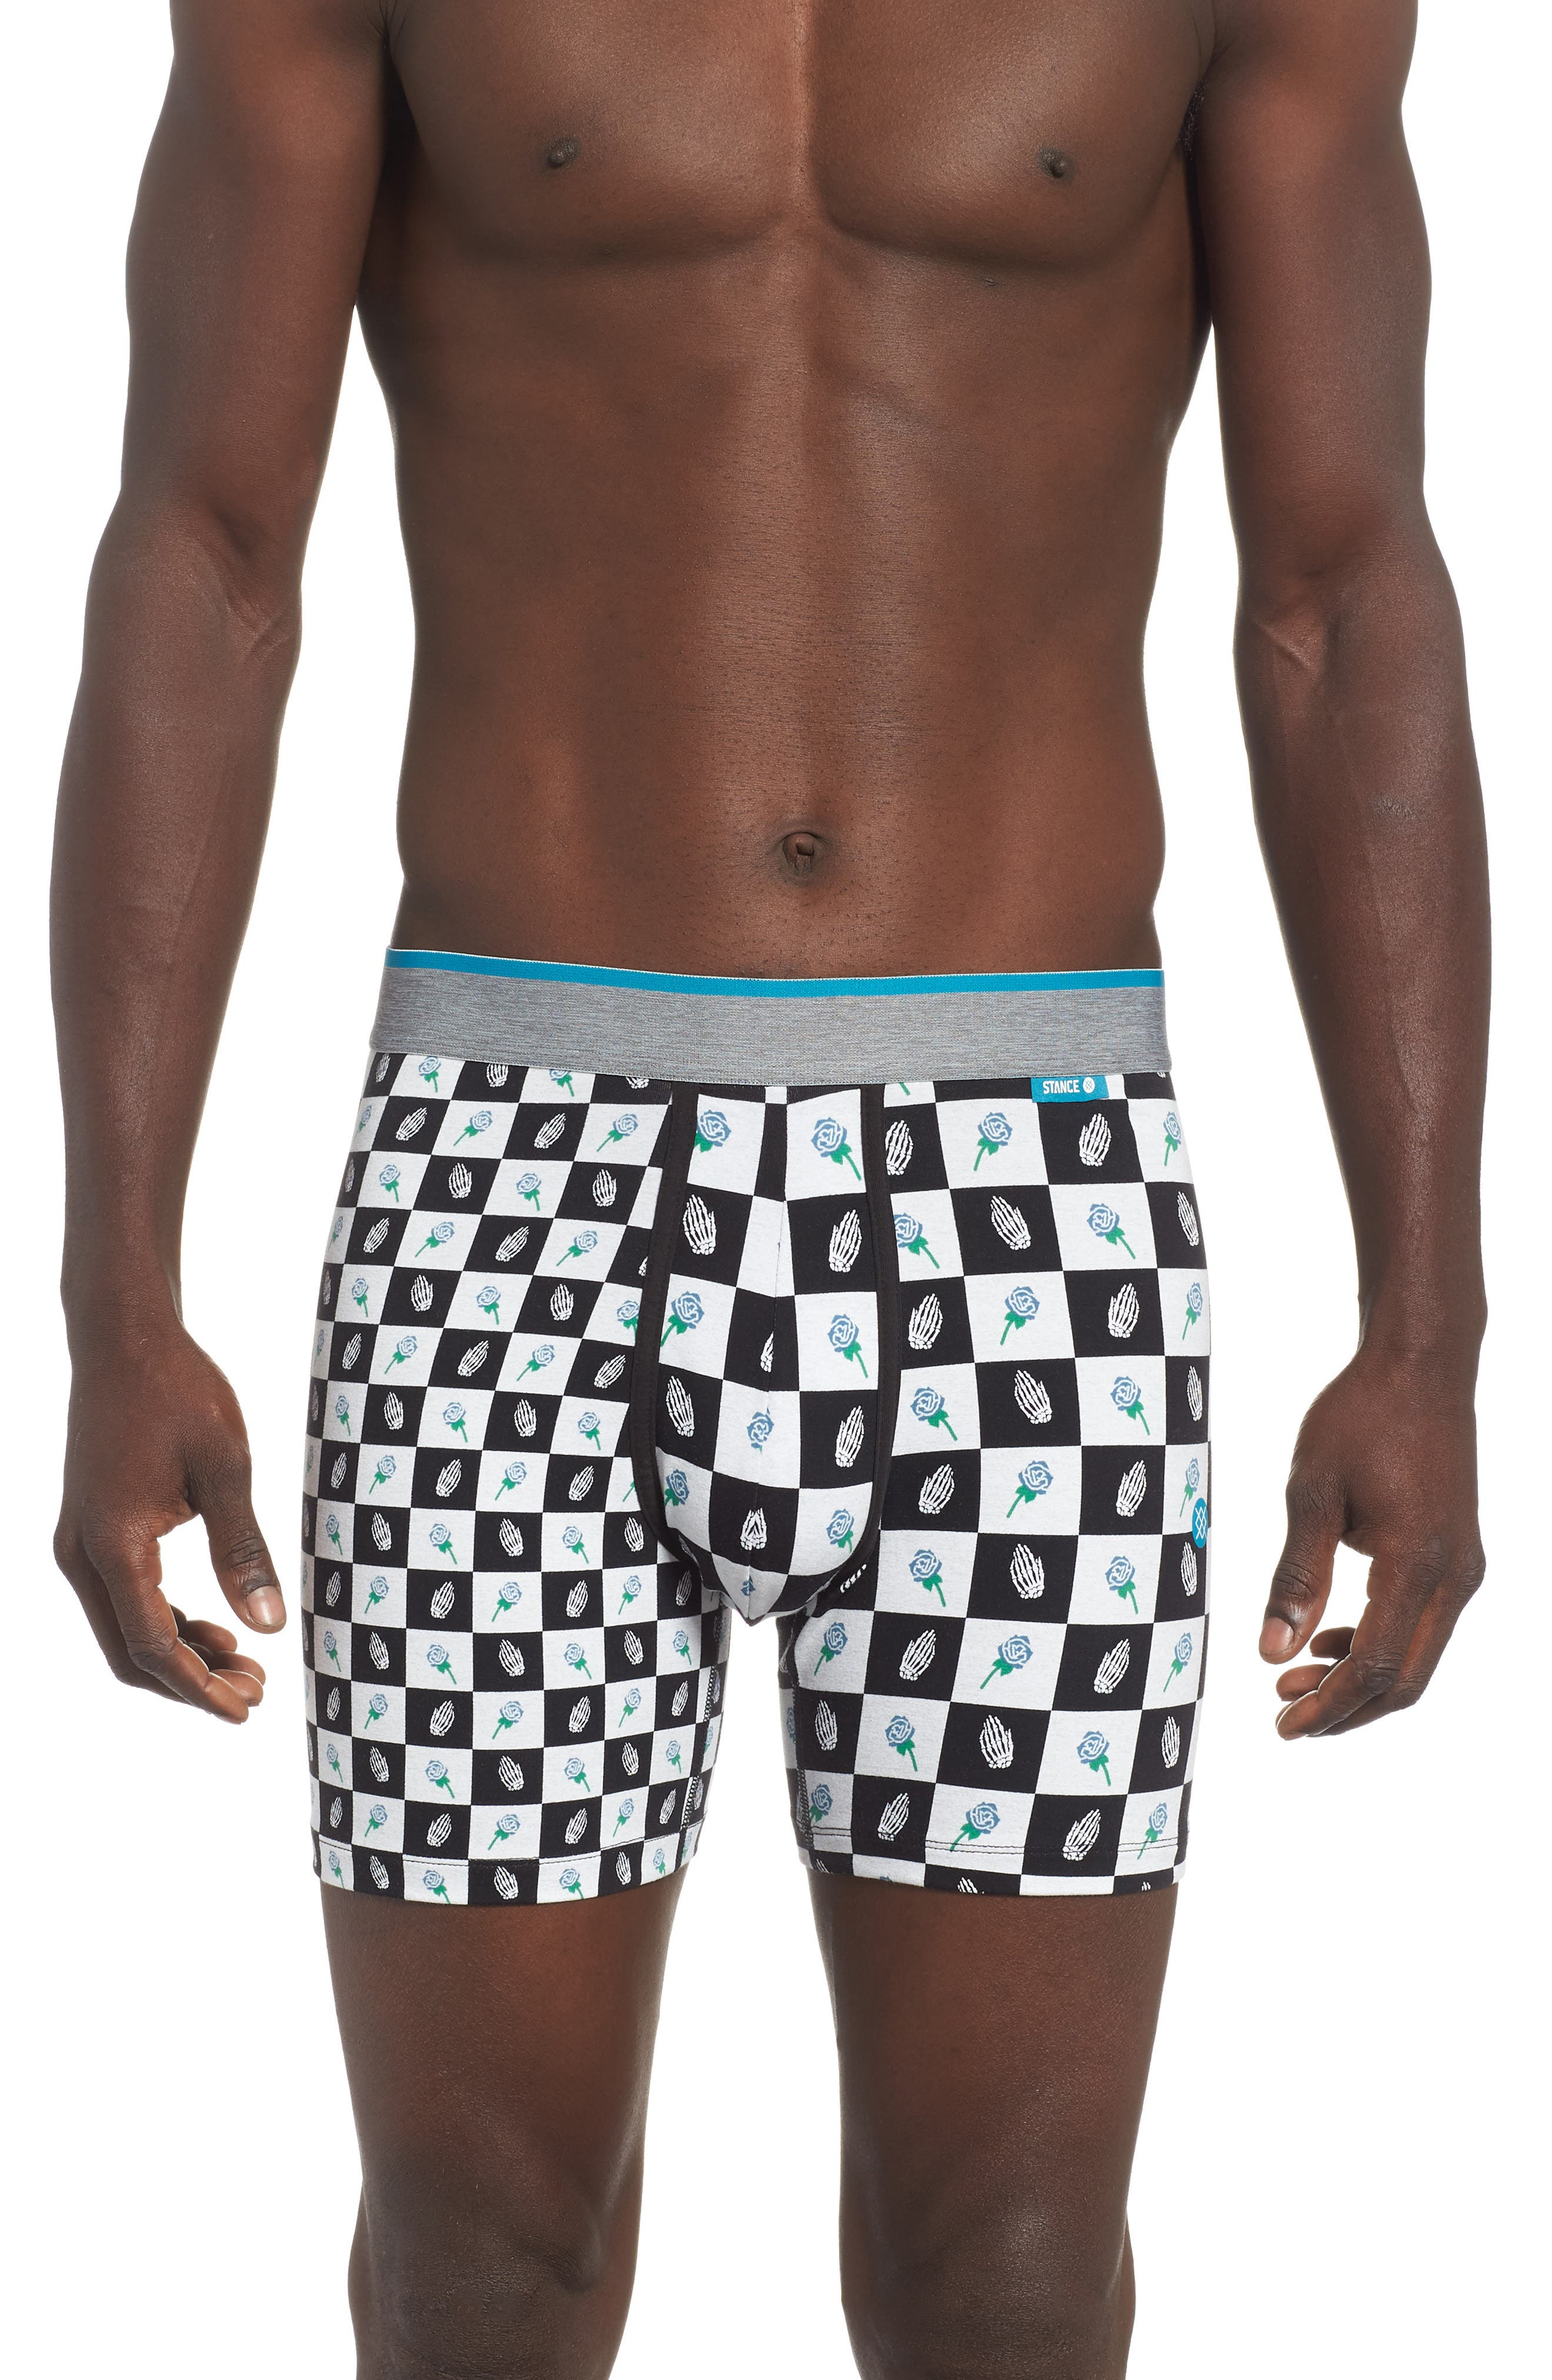 Pray Checks Boxer Briefs,                         Main,                         color, BLACK